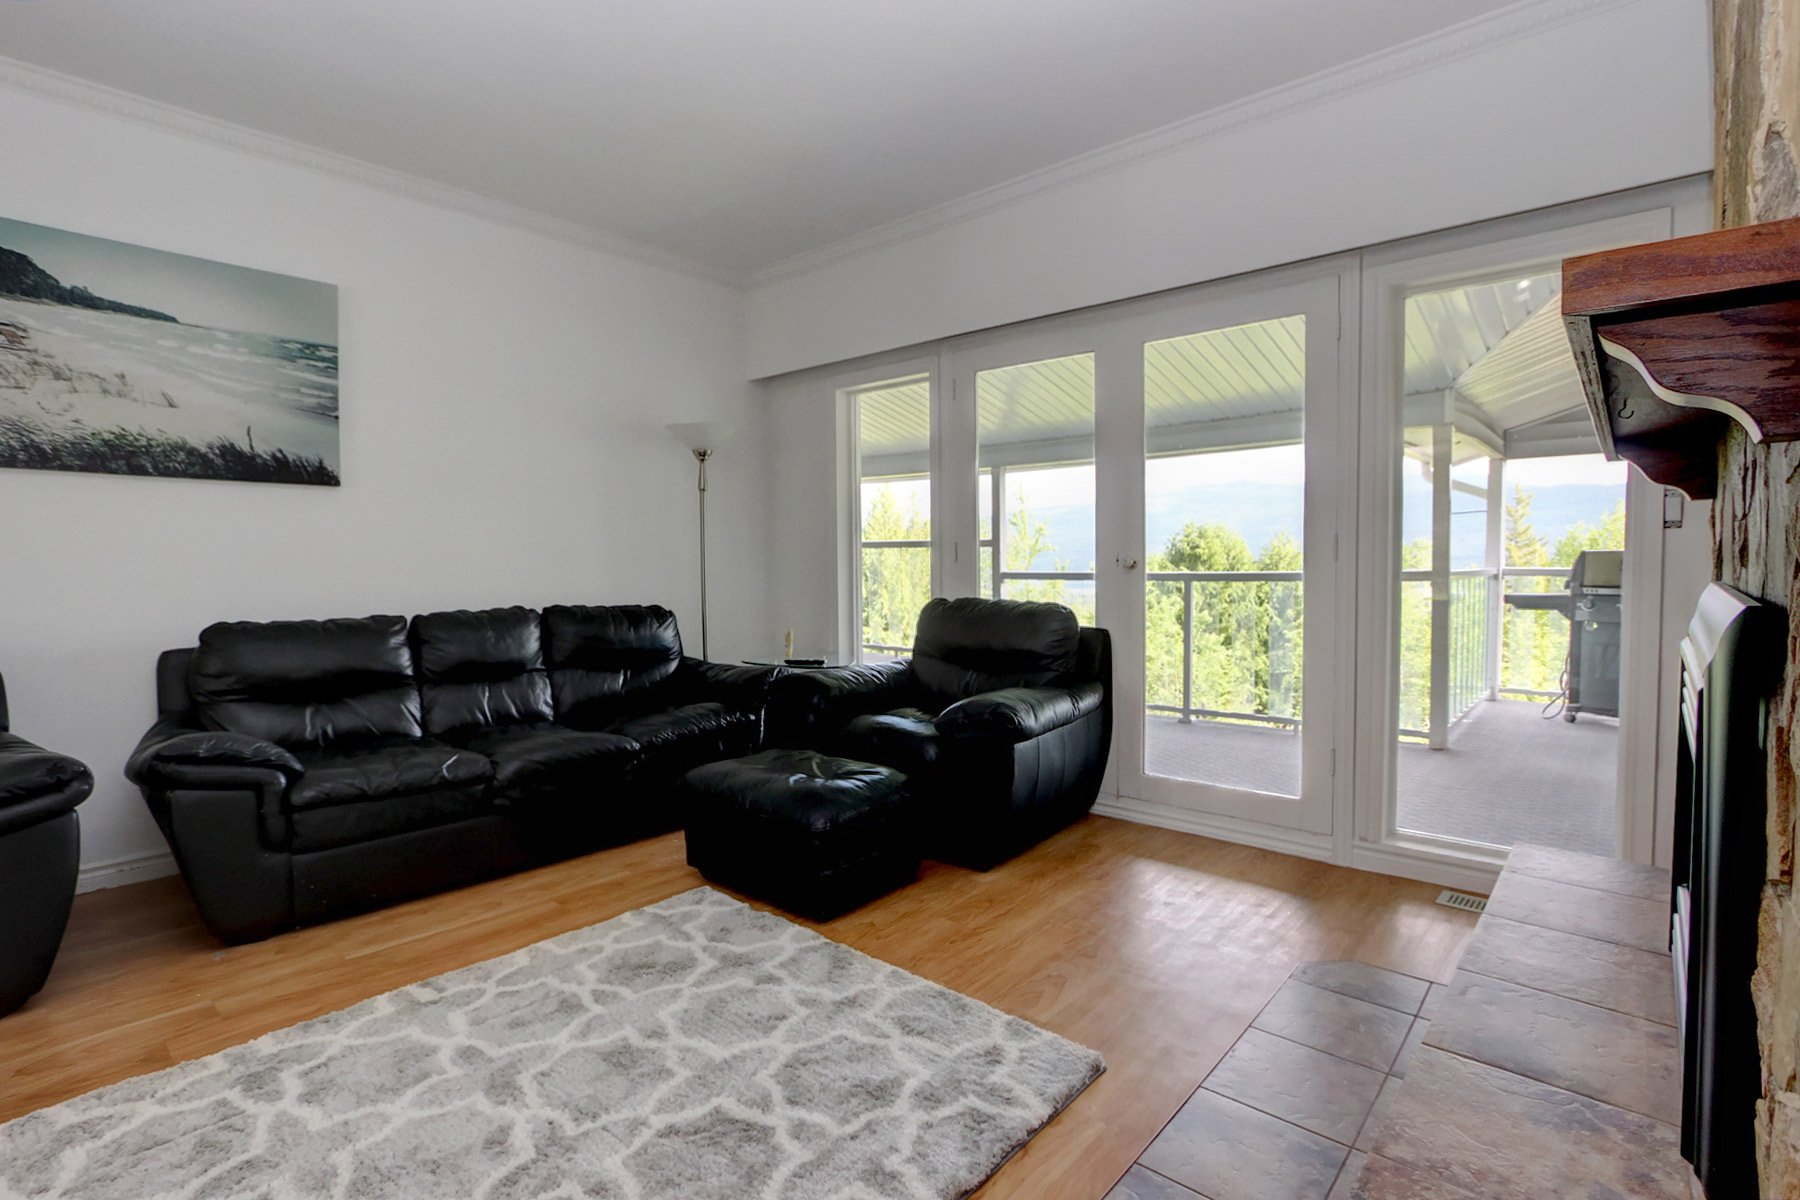 Photo 22: Photos: 6831 Magna Bay Drive in Magna Bay: House with Acreage for sale : MLS®# 10205520